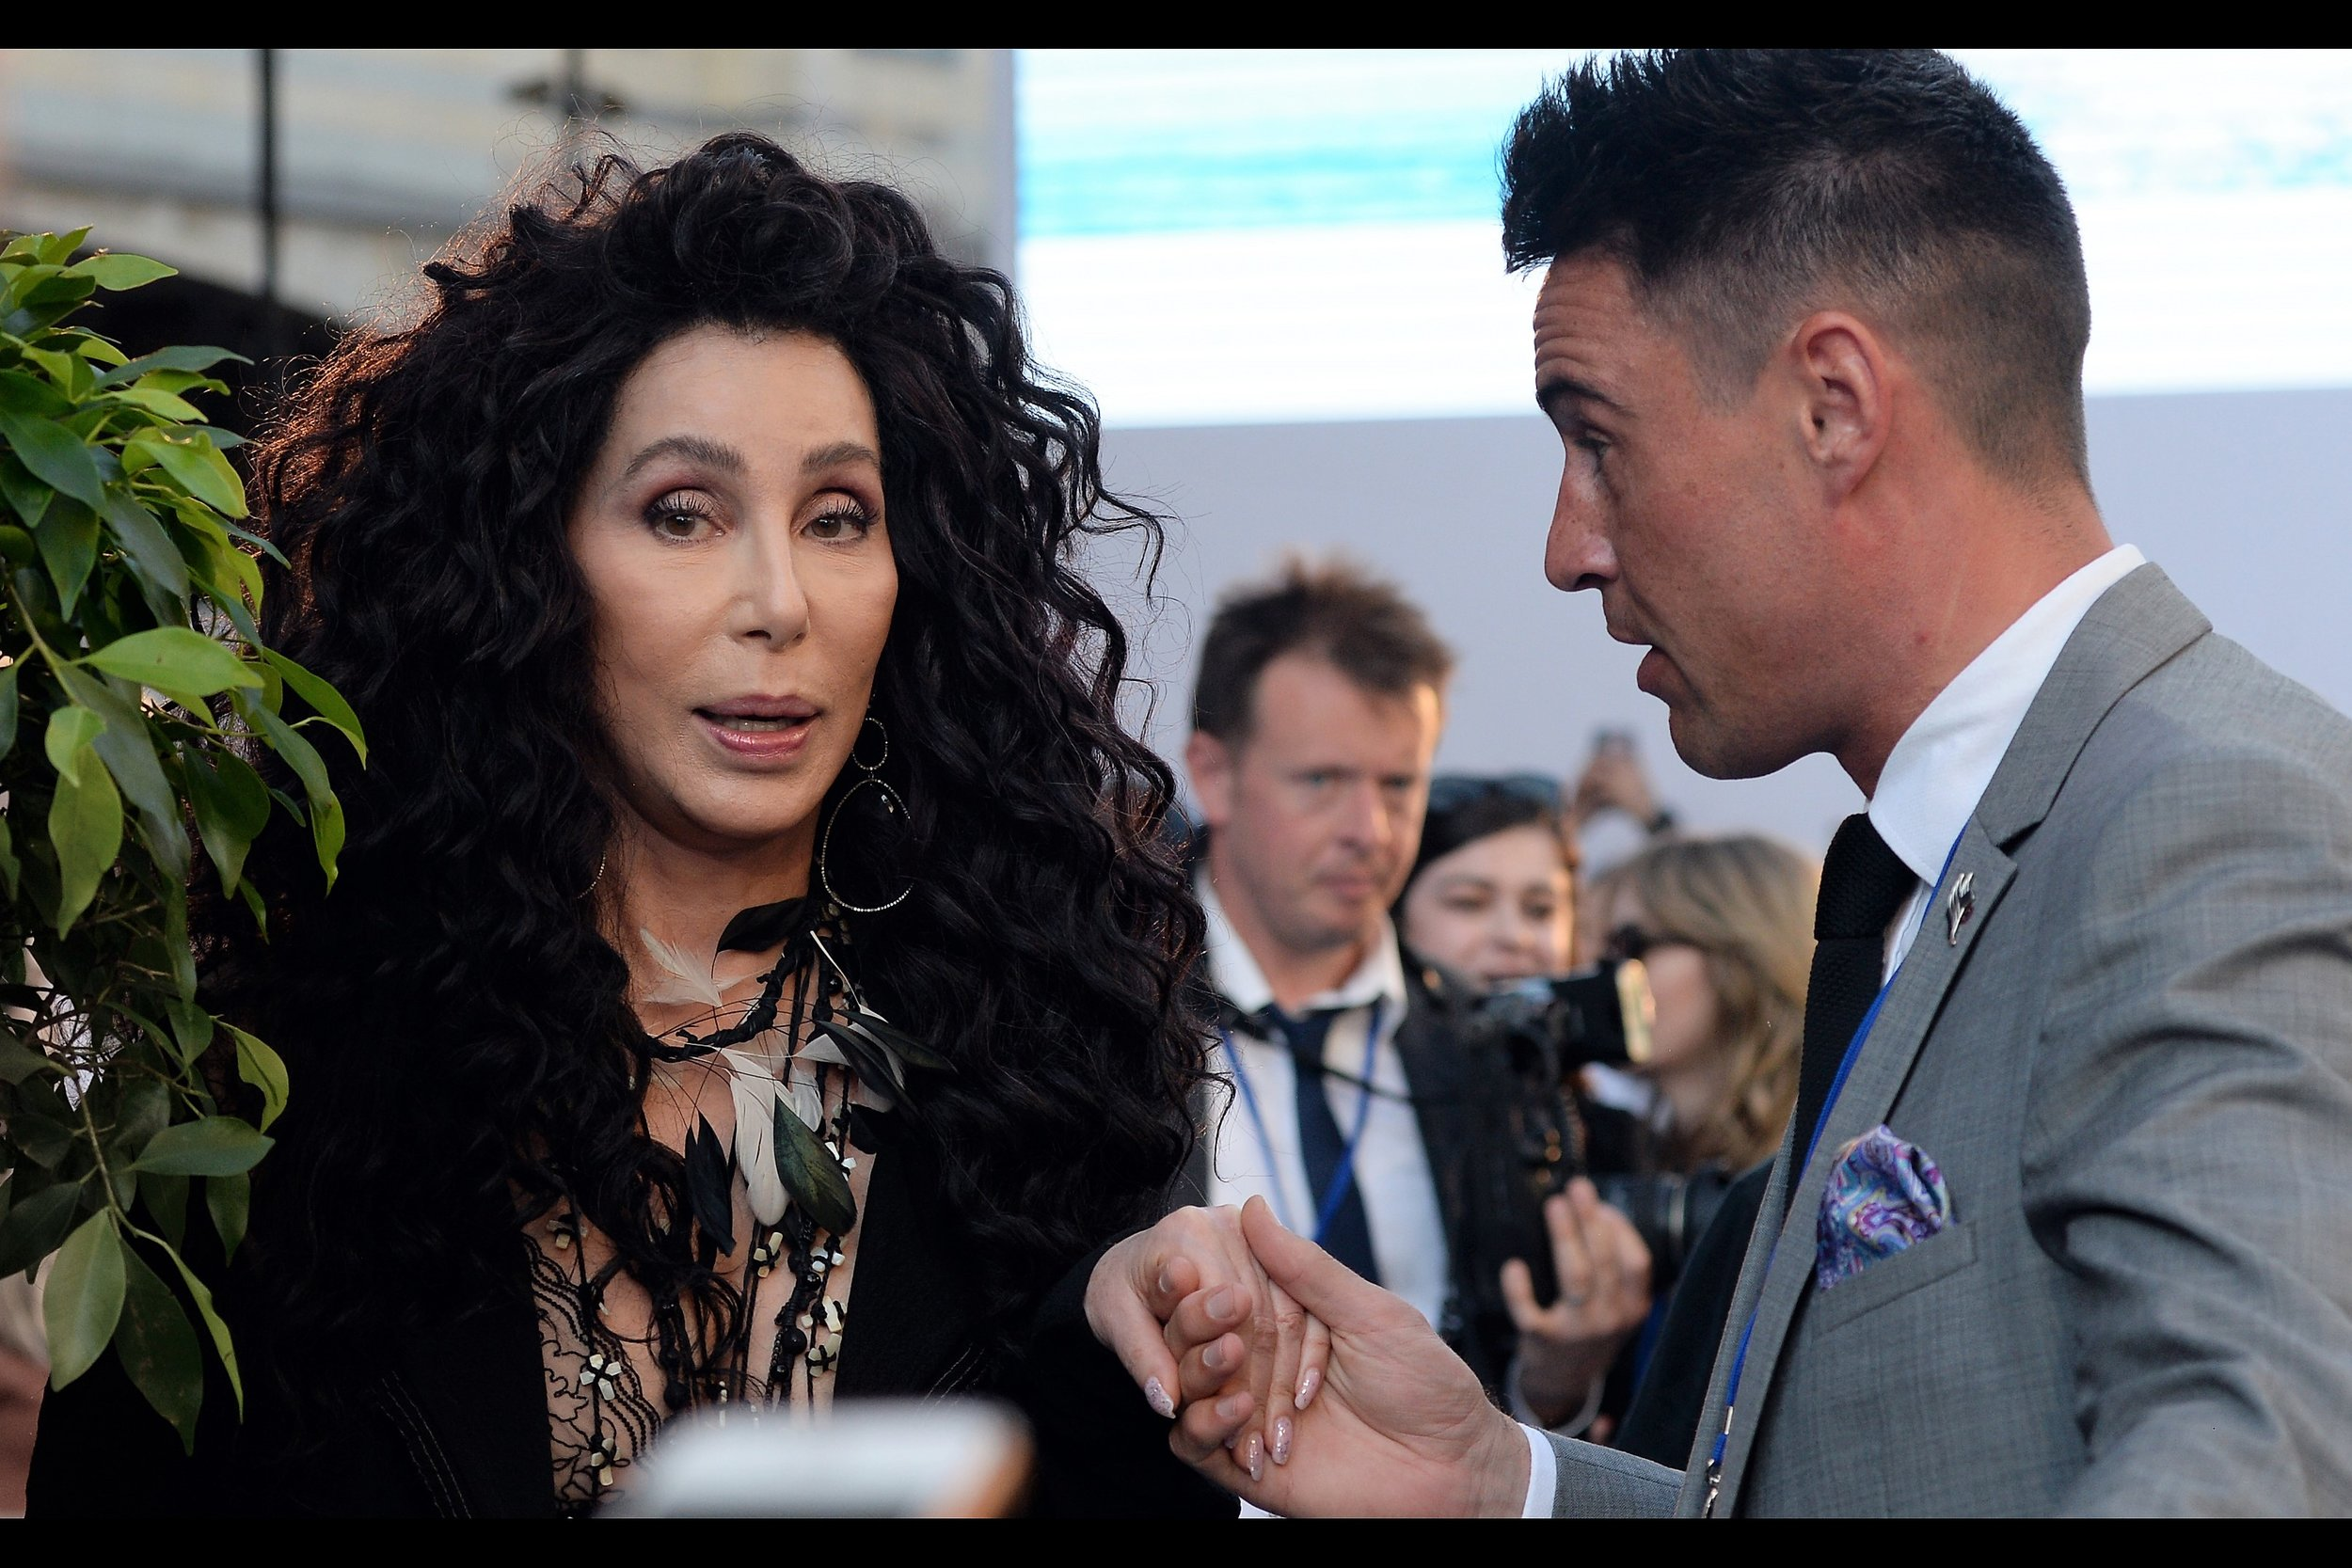 """Is that the guy with the website? He should publish in Magazines or Newspapers. Print is still profitable, right?""  It's Cher! She's won a Grammy (2000), an Oscar (Best Actress, Moonstruck (1987), AND an Emmy (2003) ... and apparently holds or held the Guinness Book Of World Records recorded for the Oldest person ever to have a #1 songs on the Billboard100."